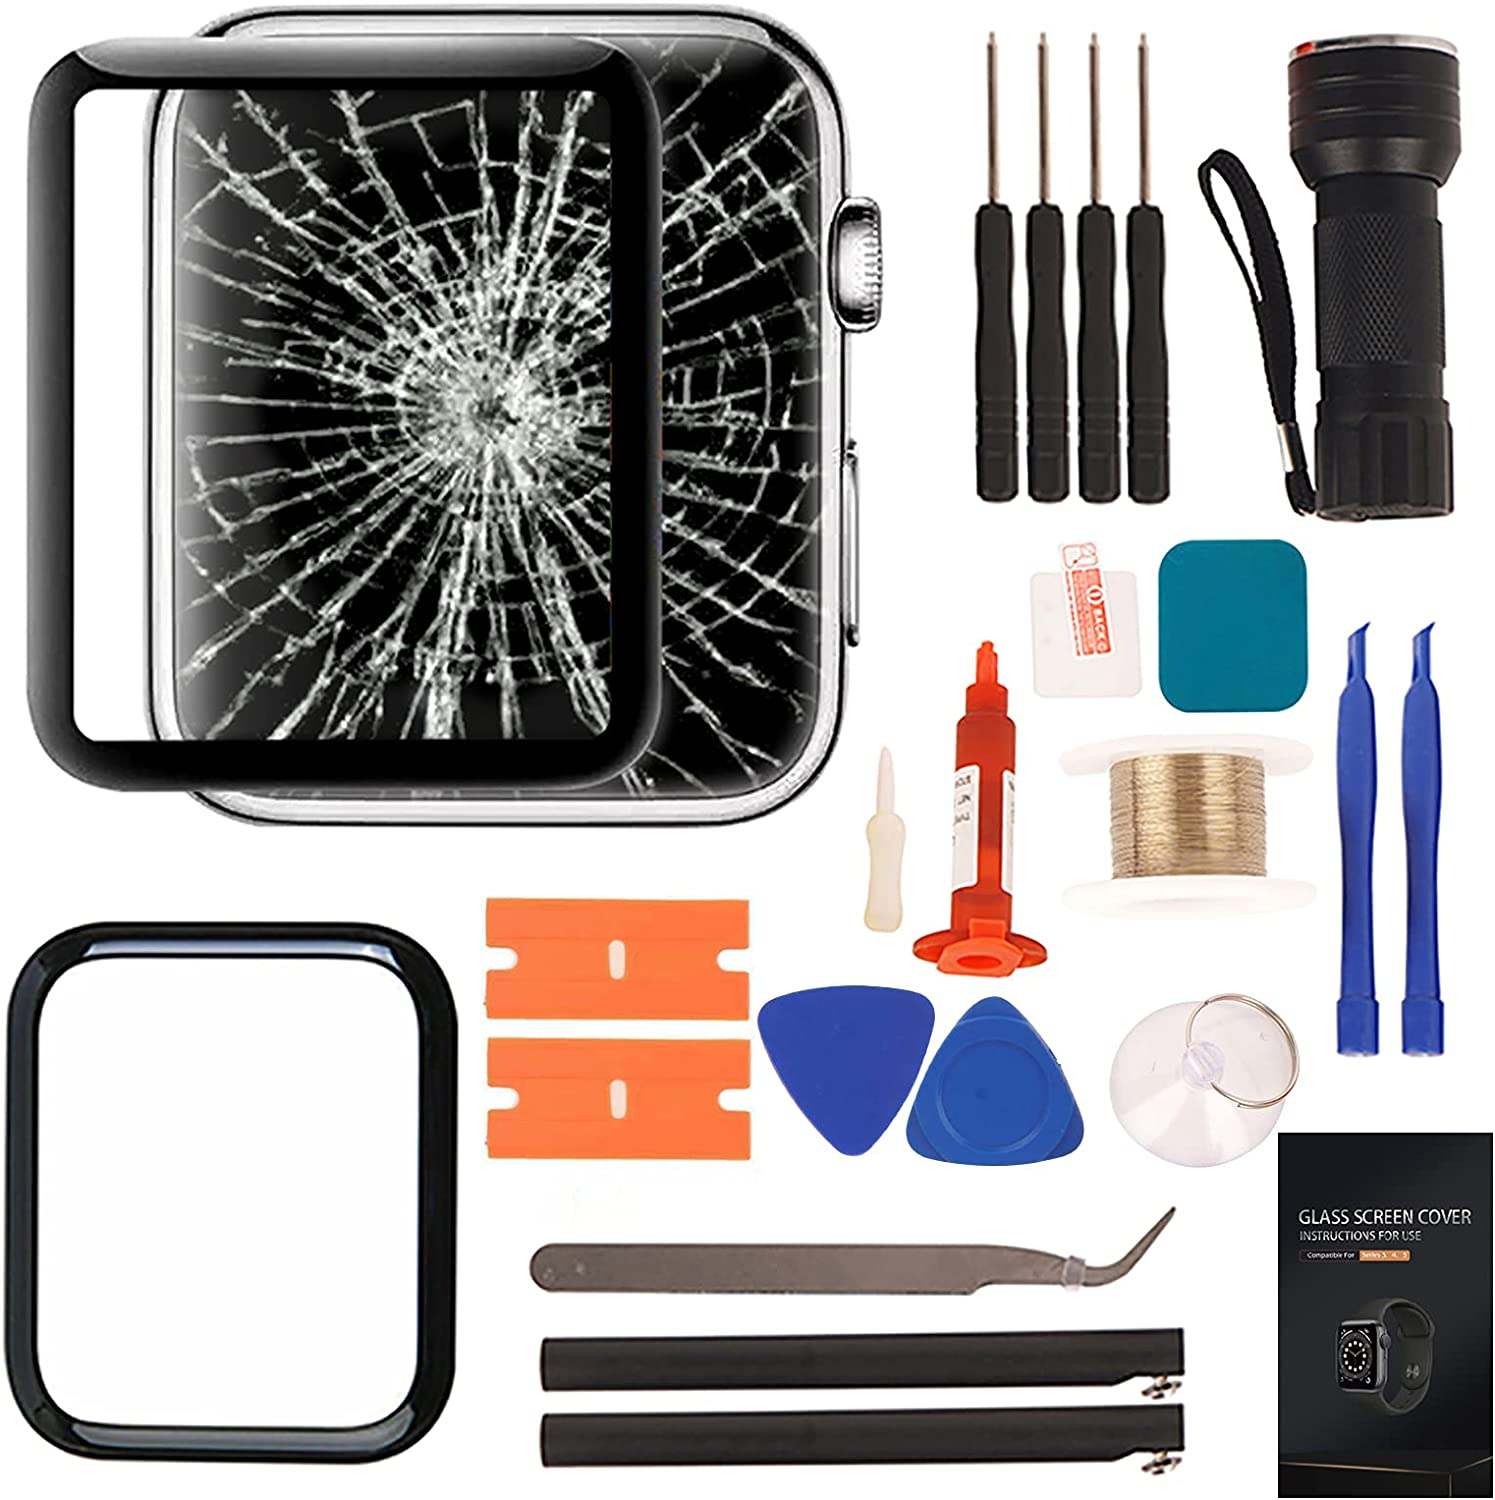 Compatible with Apple Watch 2 Screen Replacement - Front LCD Glass Lens Replacement Repair Kit & Compatible with Apple Watch Series 2 42mm Glass Replacement(No LCD Screen and Touch Digitizer)